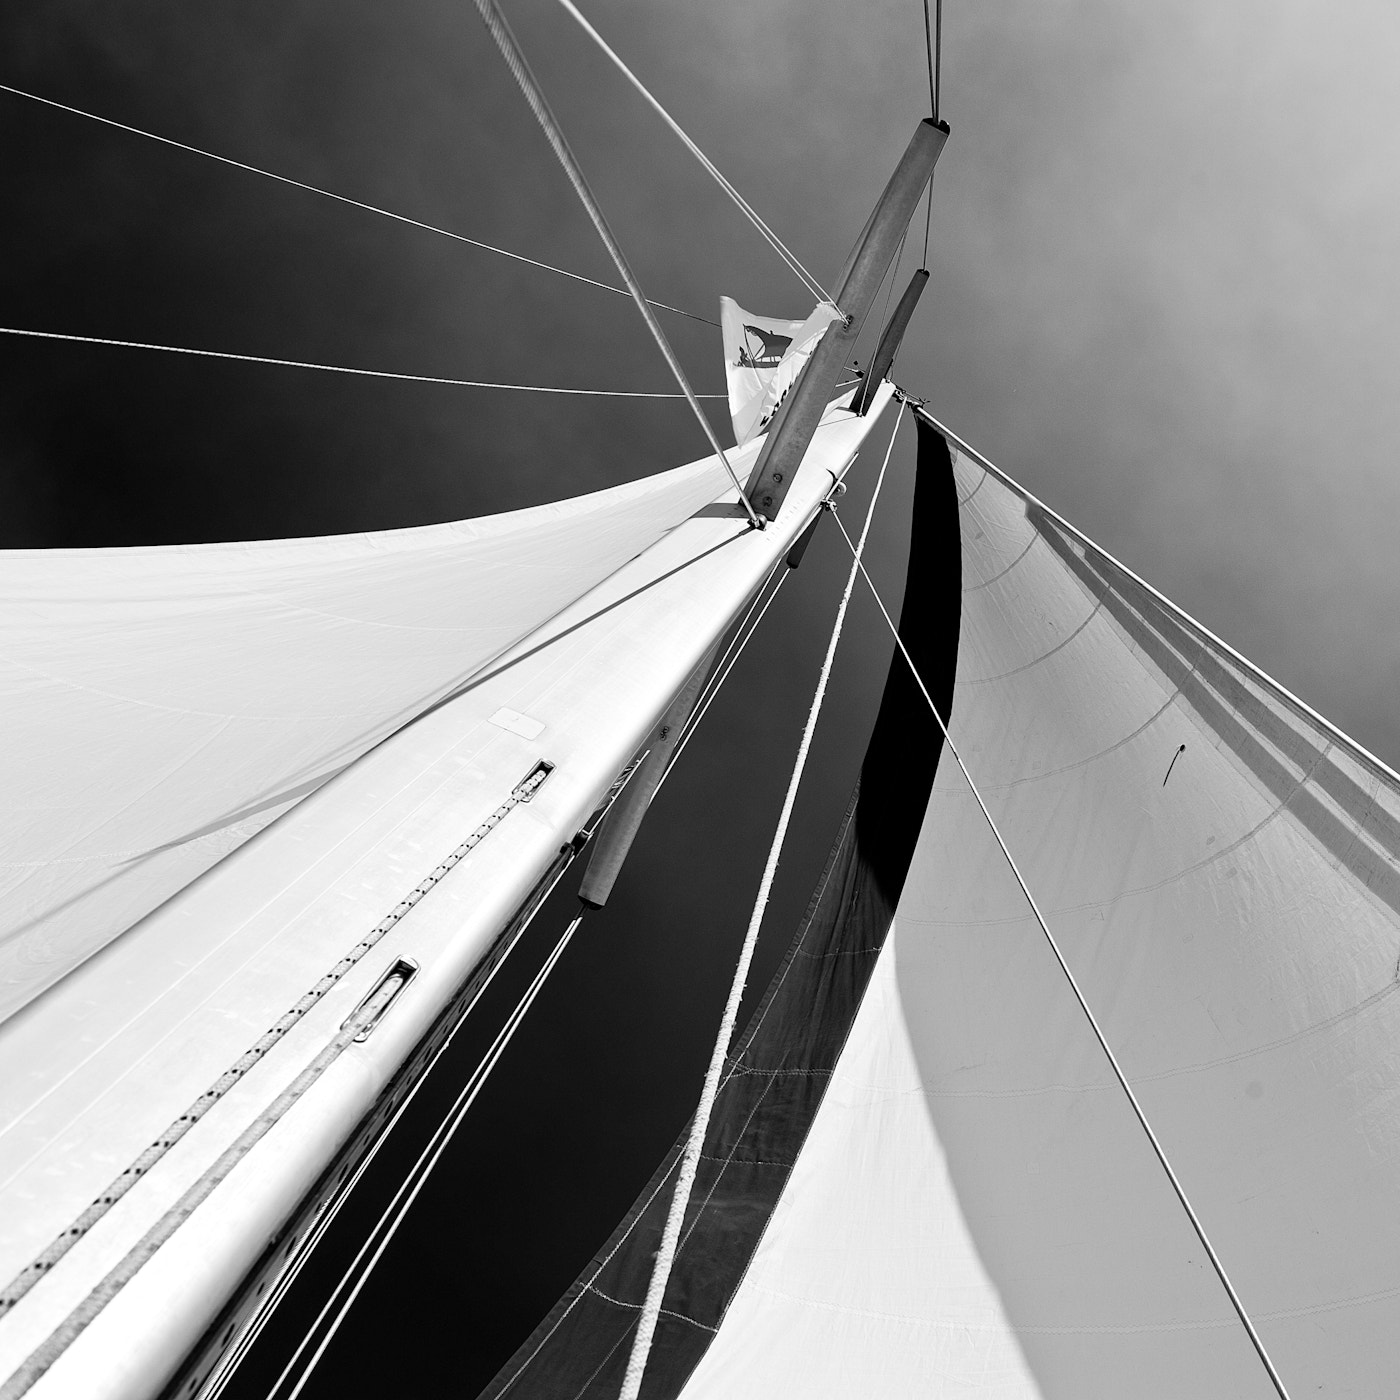 Photograph Sails 2 by Pavlo Milan on 500px